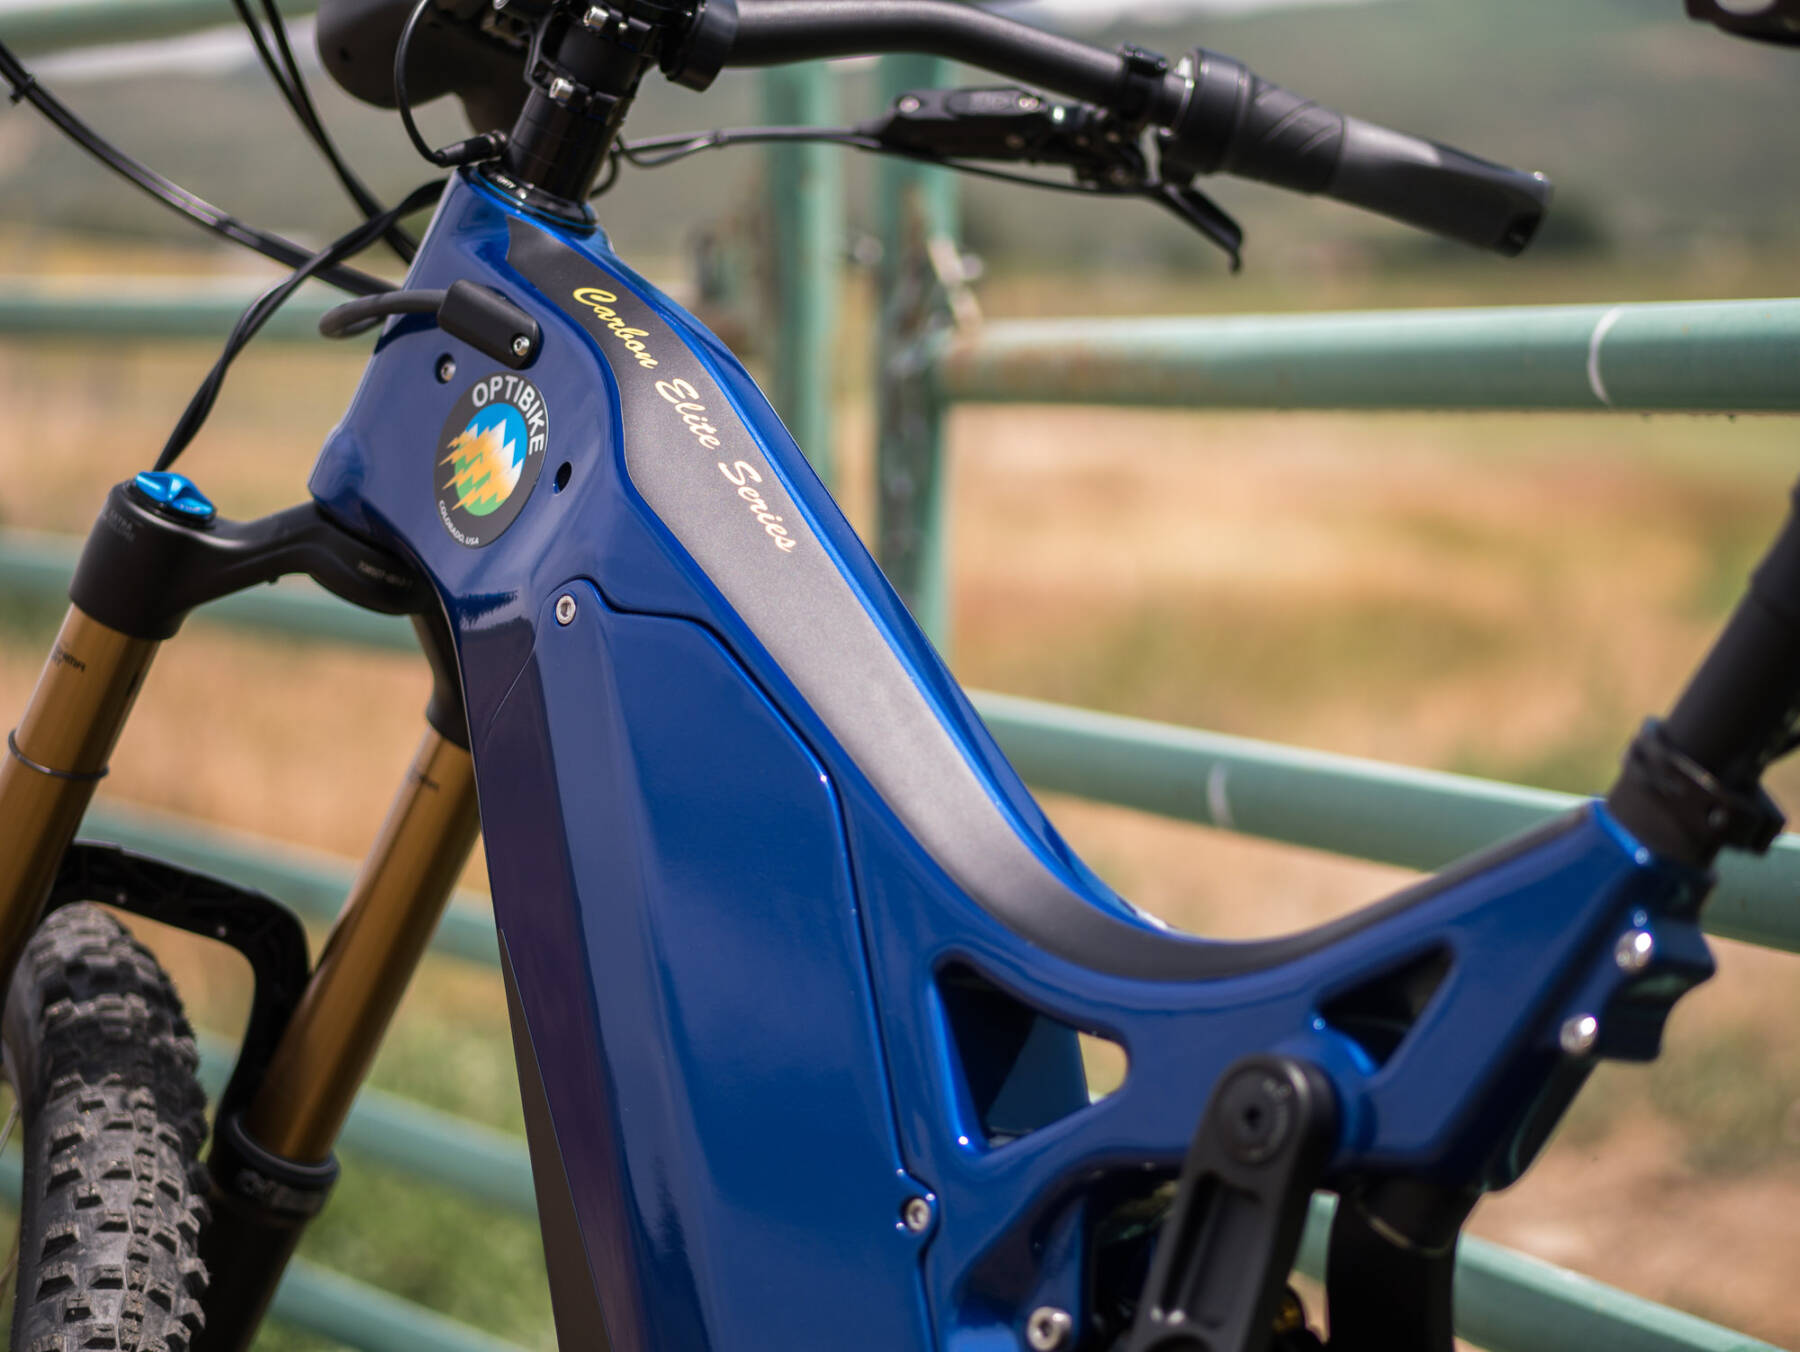 Optibike R15C Made in USA eMTB Electric Bike with Blue Paint